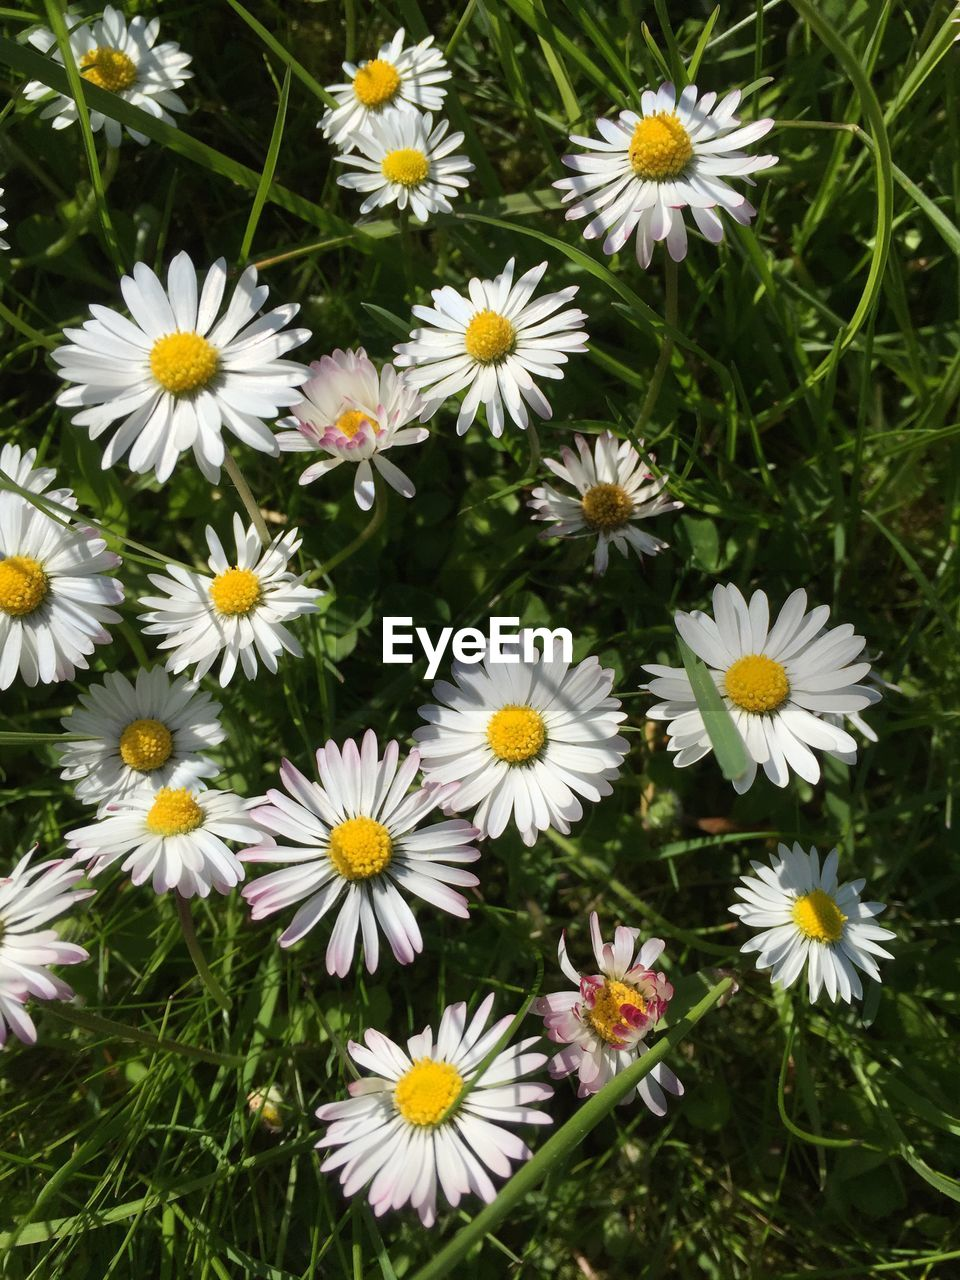 flower, petal, nature, fragility, beauty in nature, freshness, growth, flower head, plant, daisy, white color, blooming, day, high angle view, no people, outdoors, field, grass, backgrounds, close-up